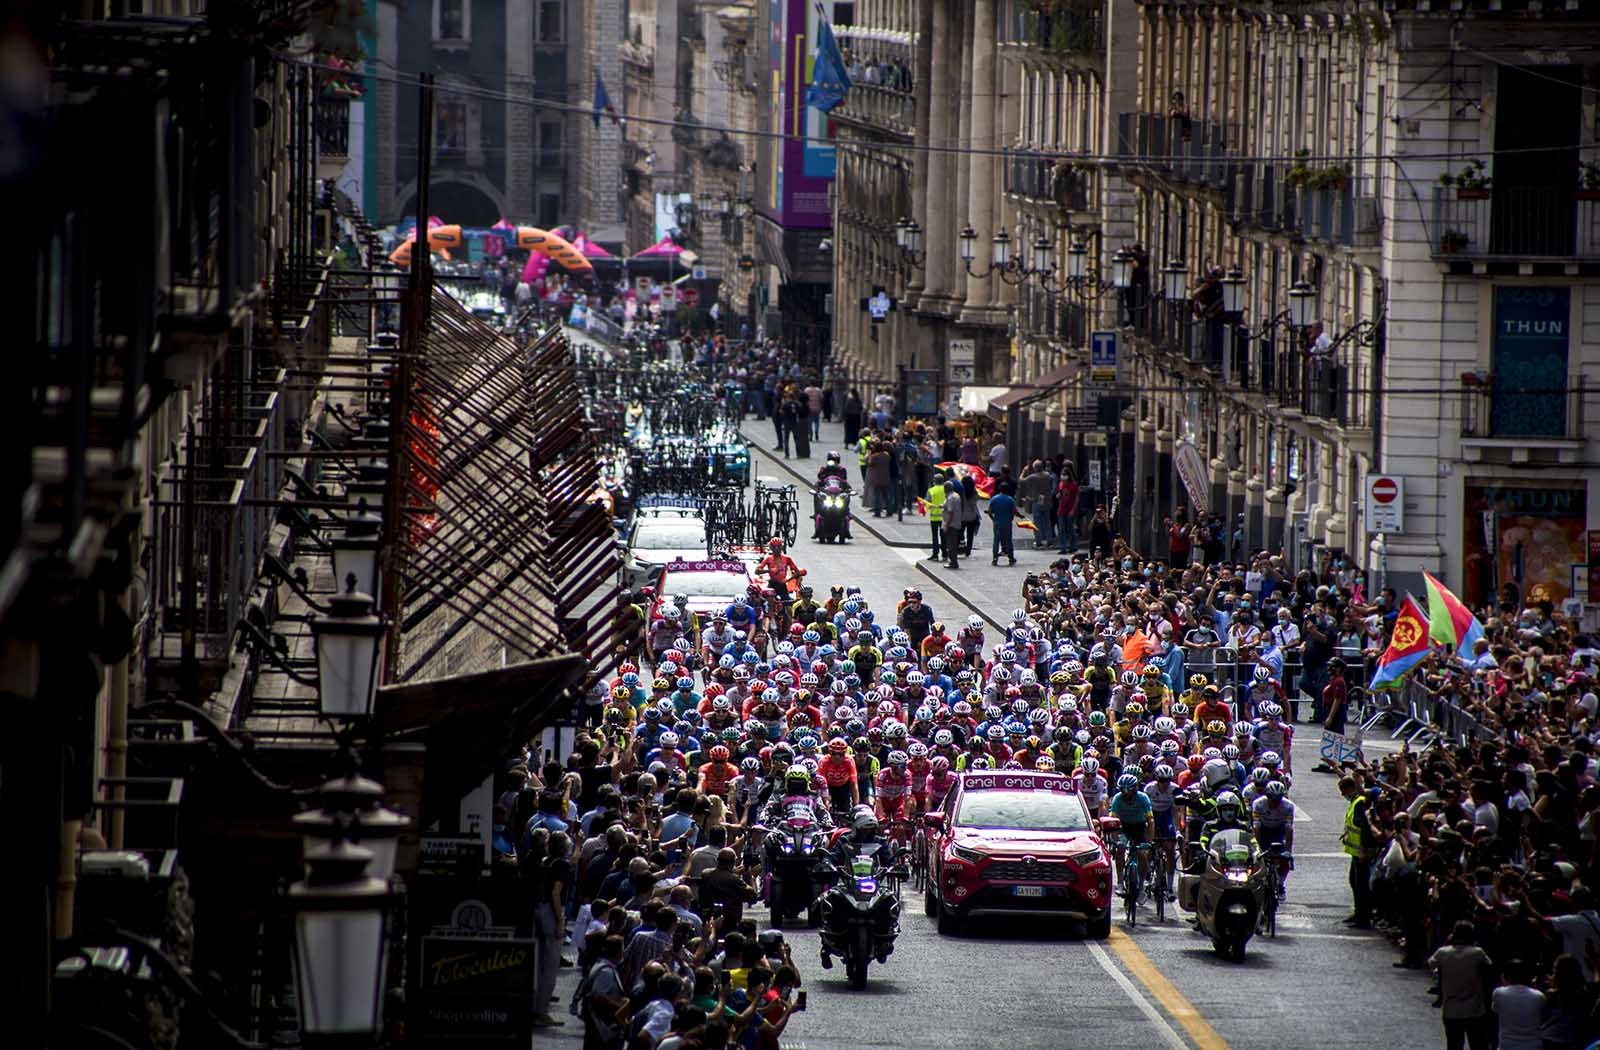 Giro d'italia in catania from the front 1600×1050